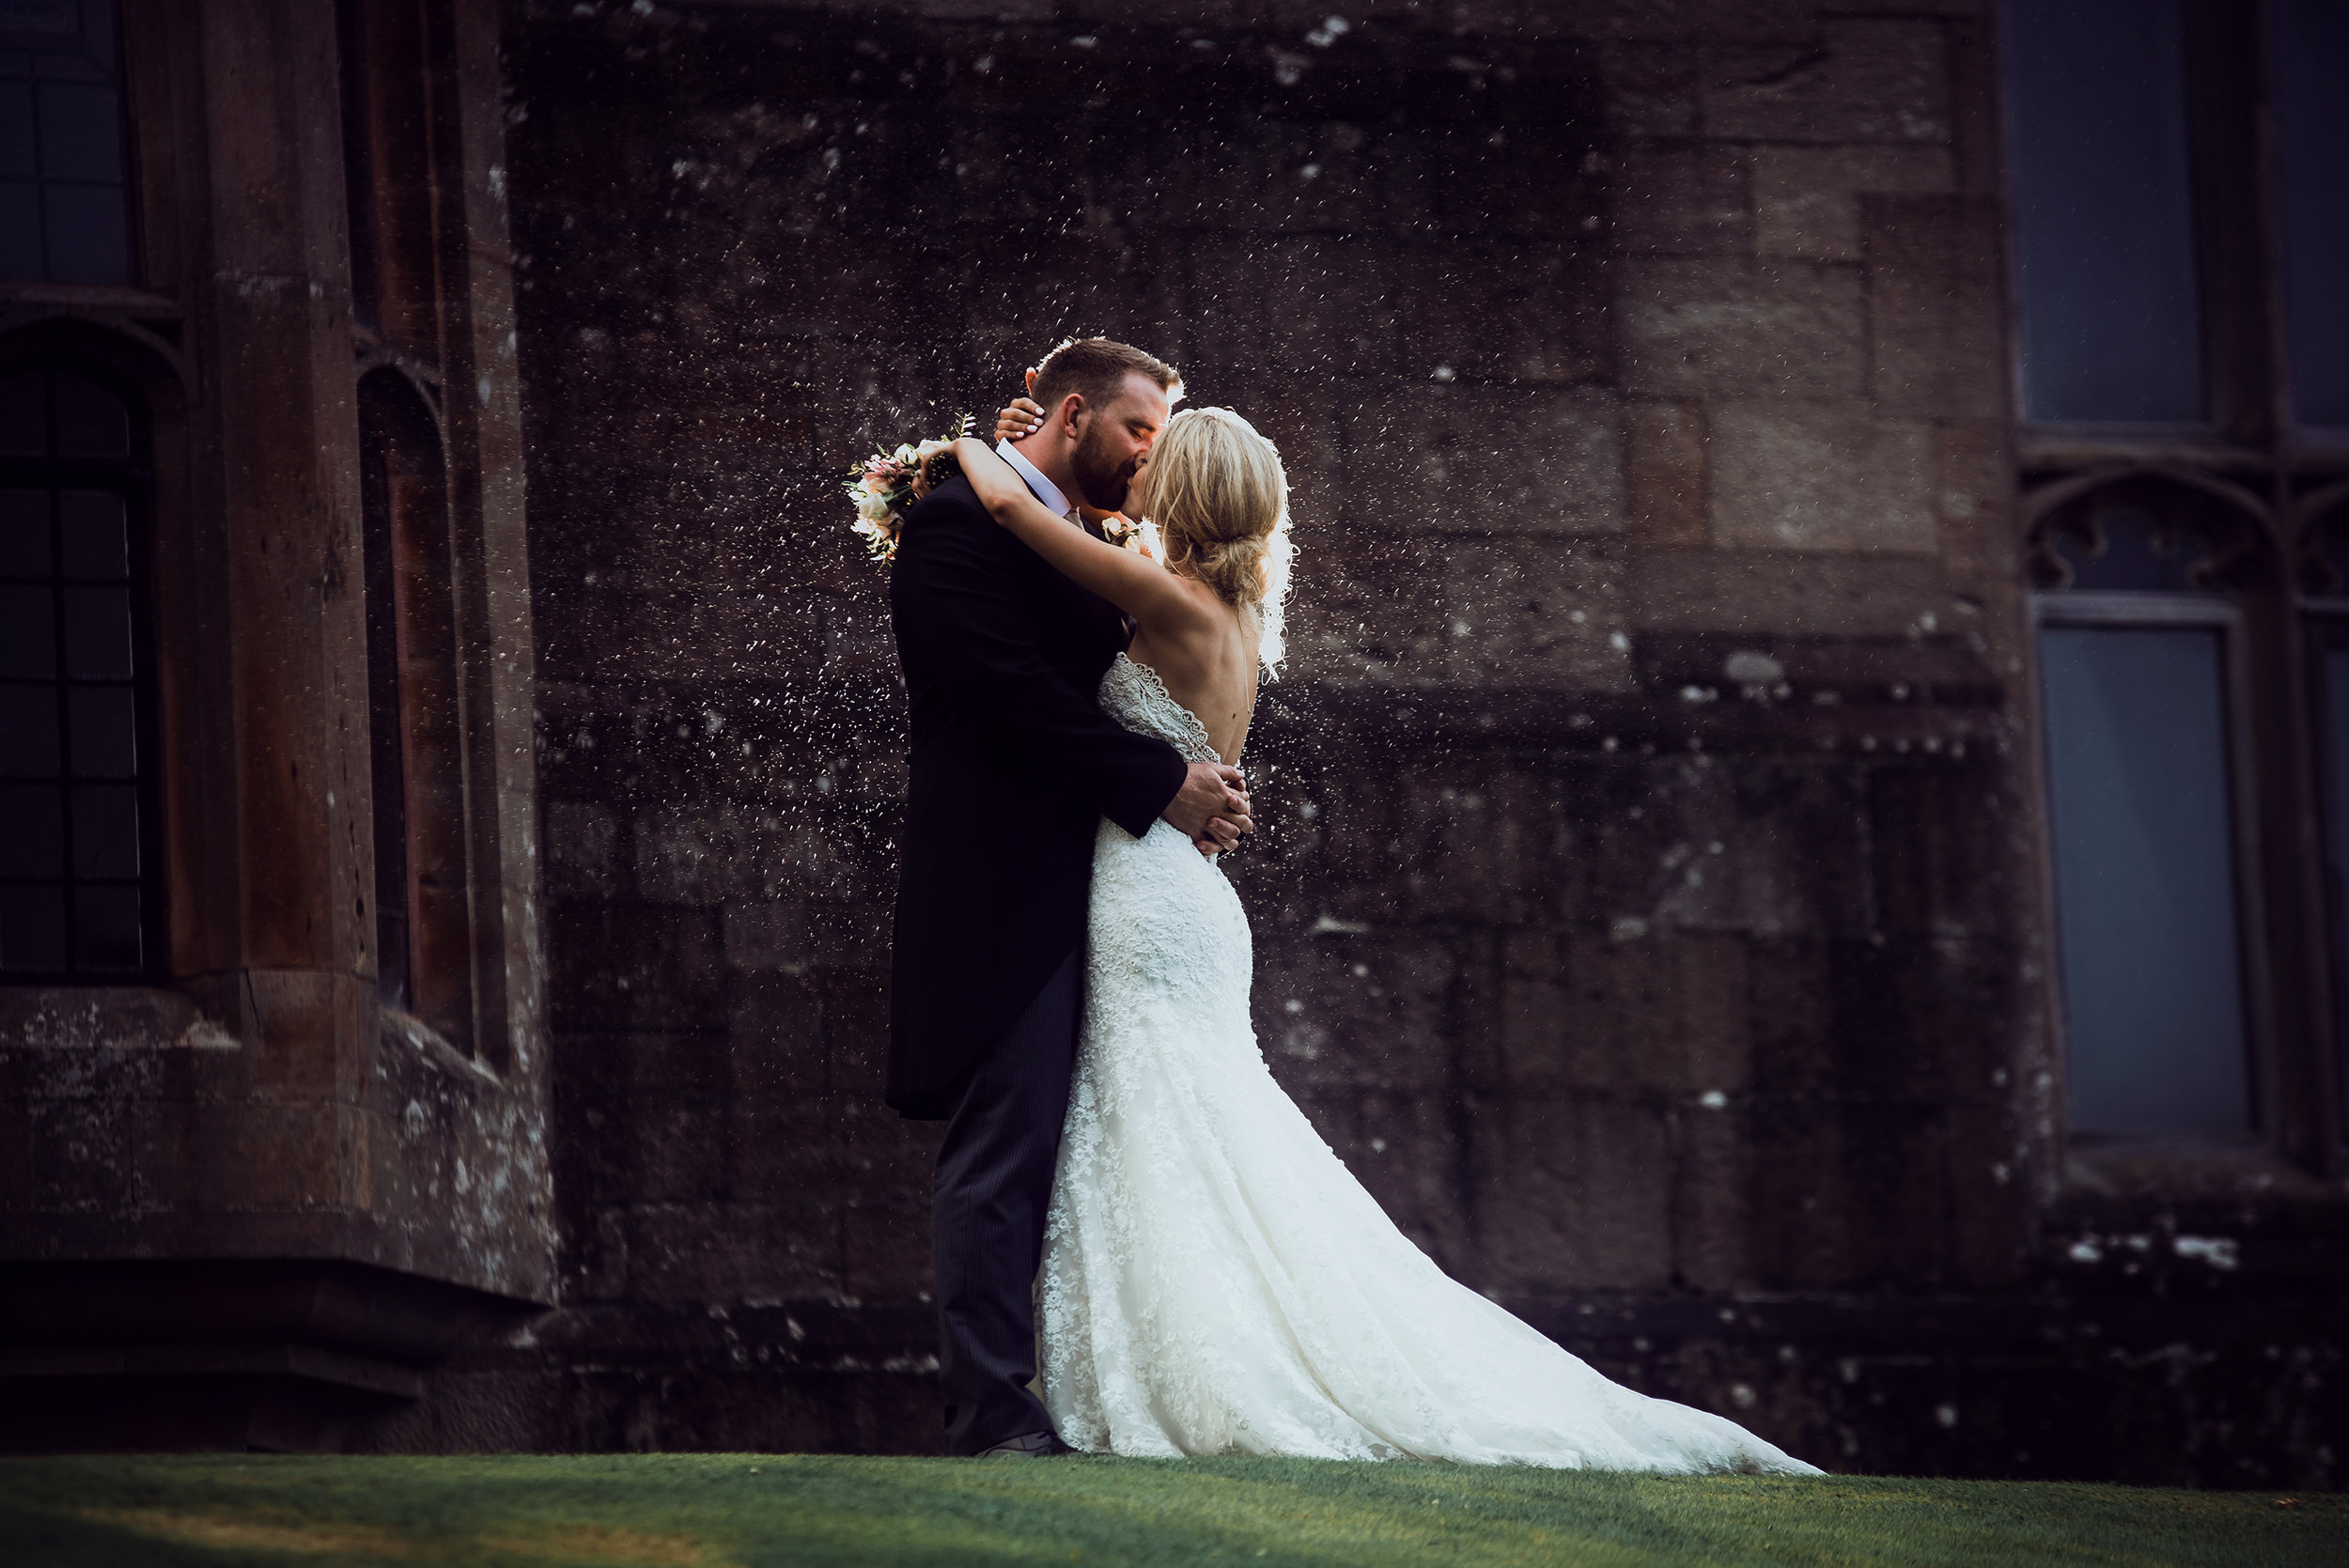 The bride and groom kissing in the rain